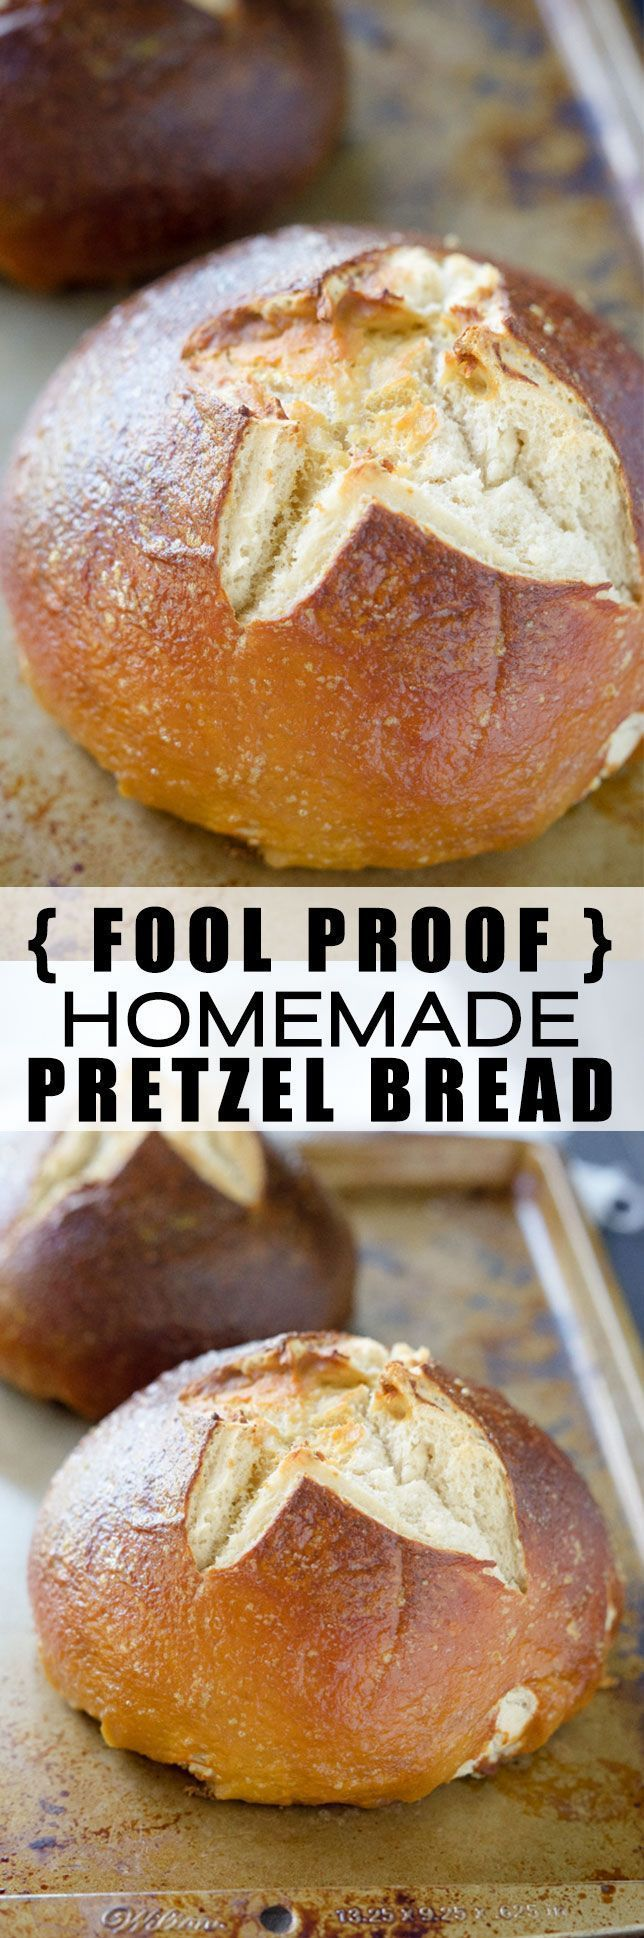 This Fool Proof Homemade Pretzel Bread has a salty and crispy crust ...